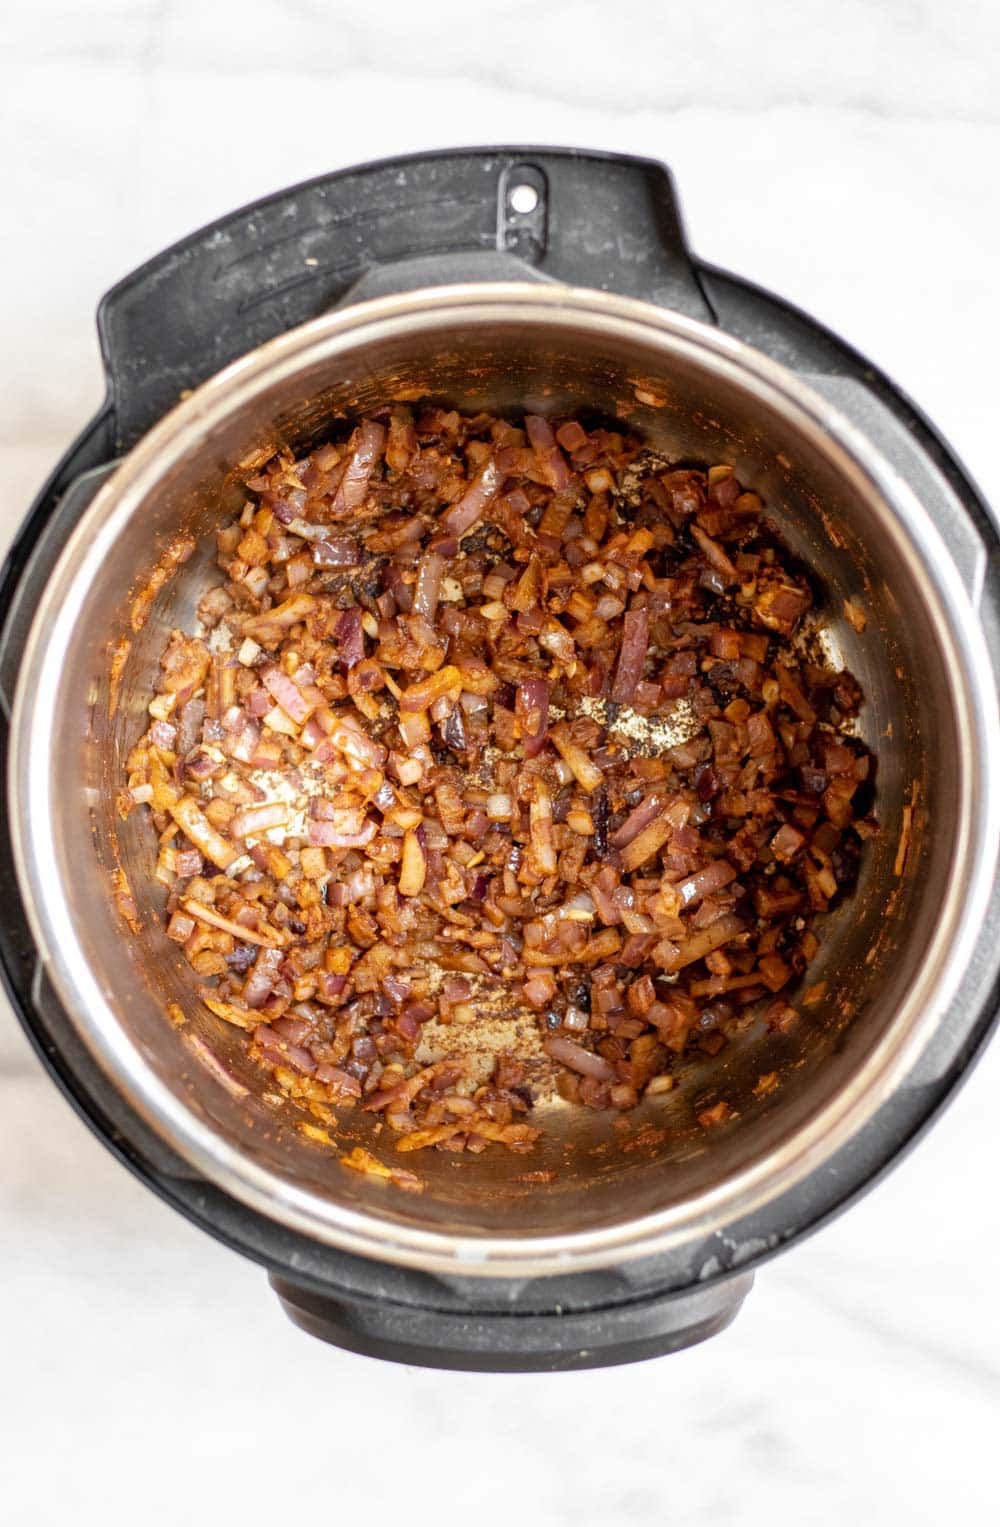 Onion and garlic with spices in the pot.